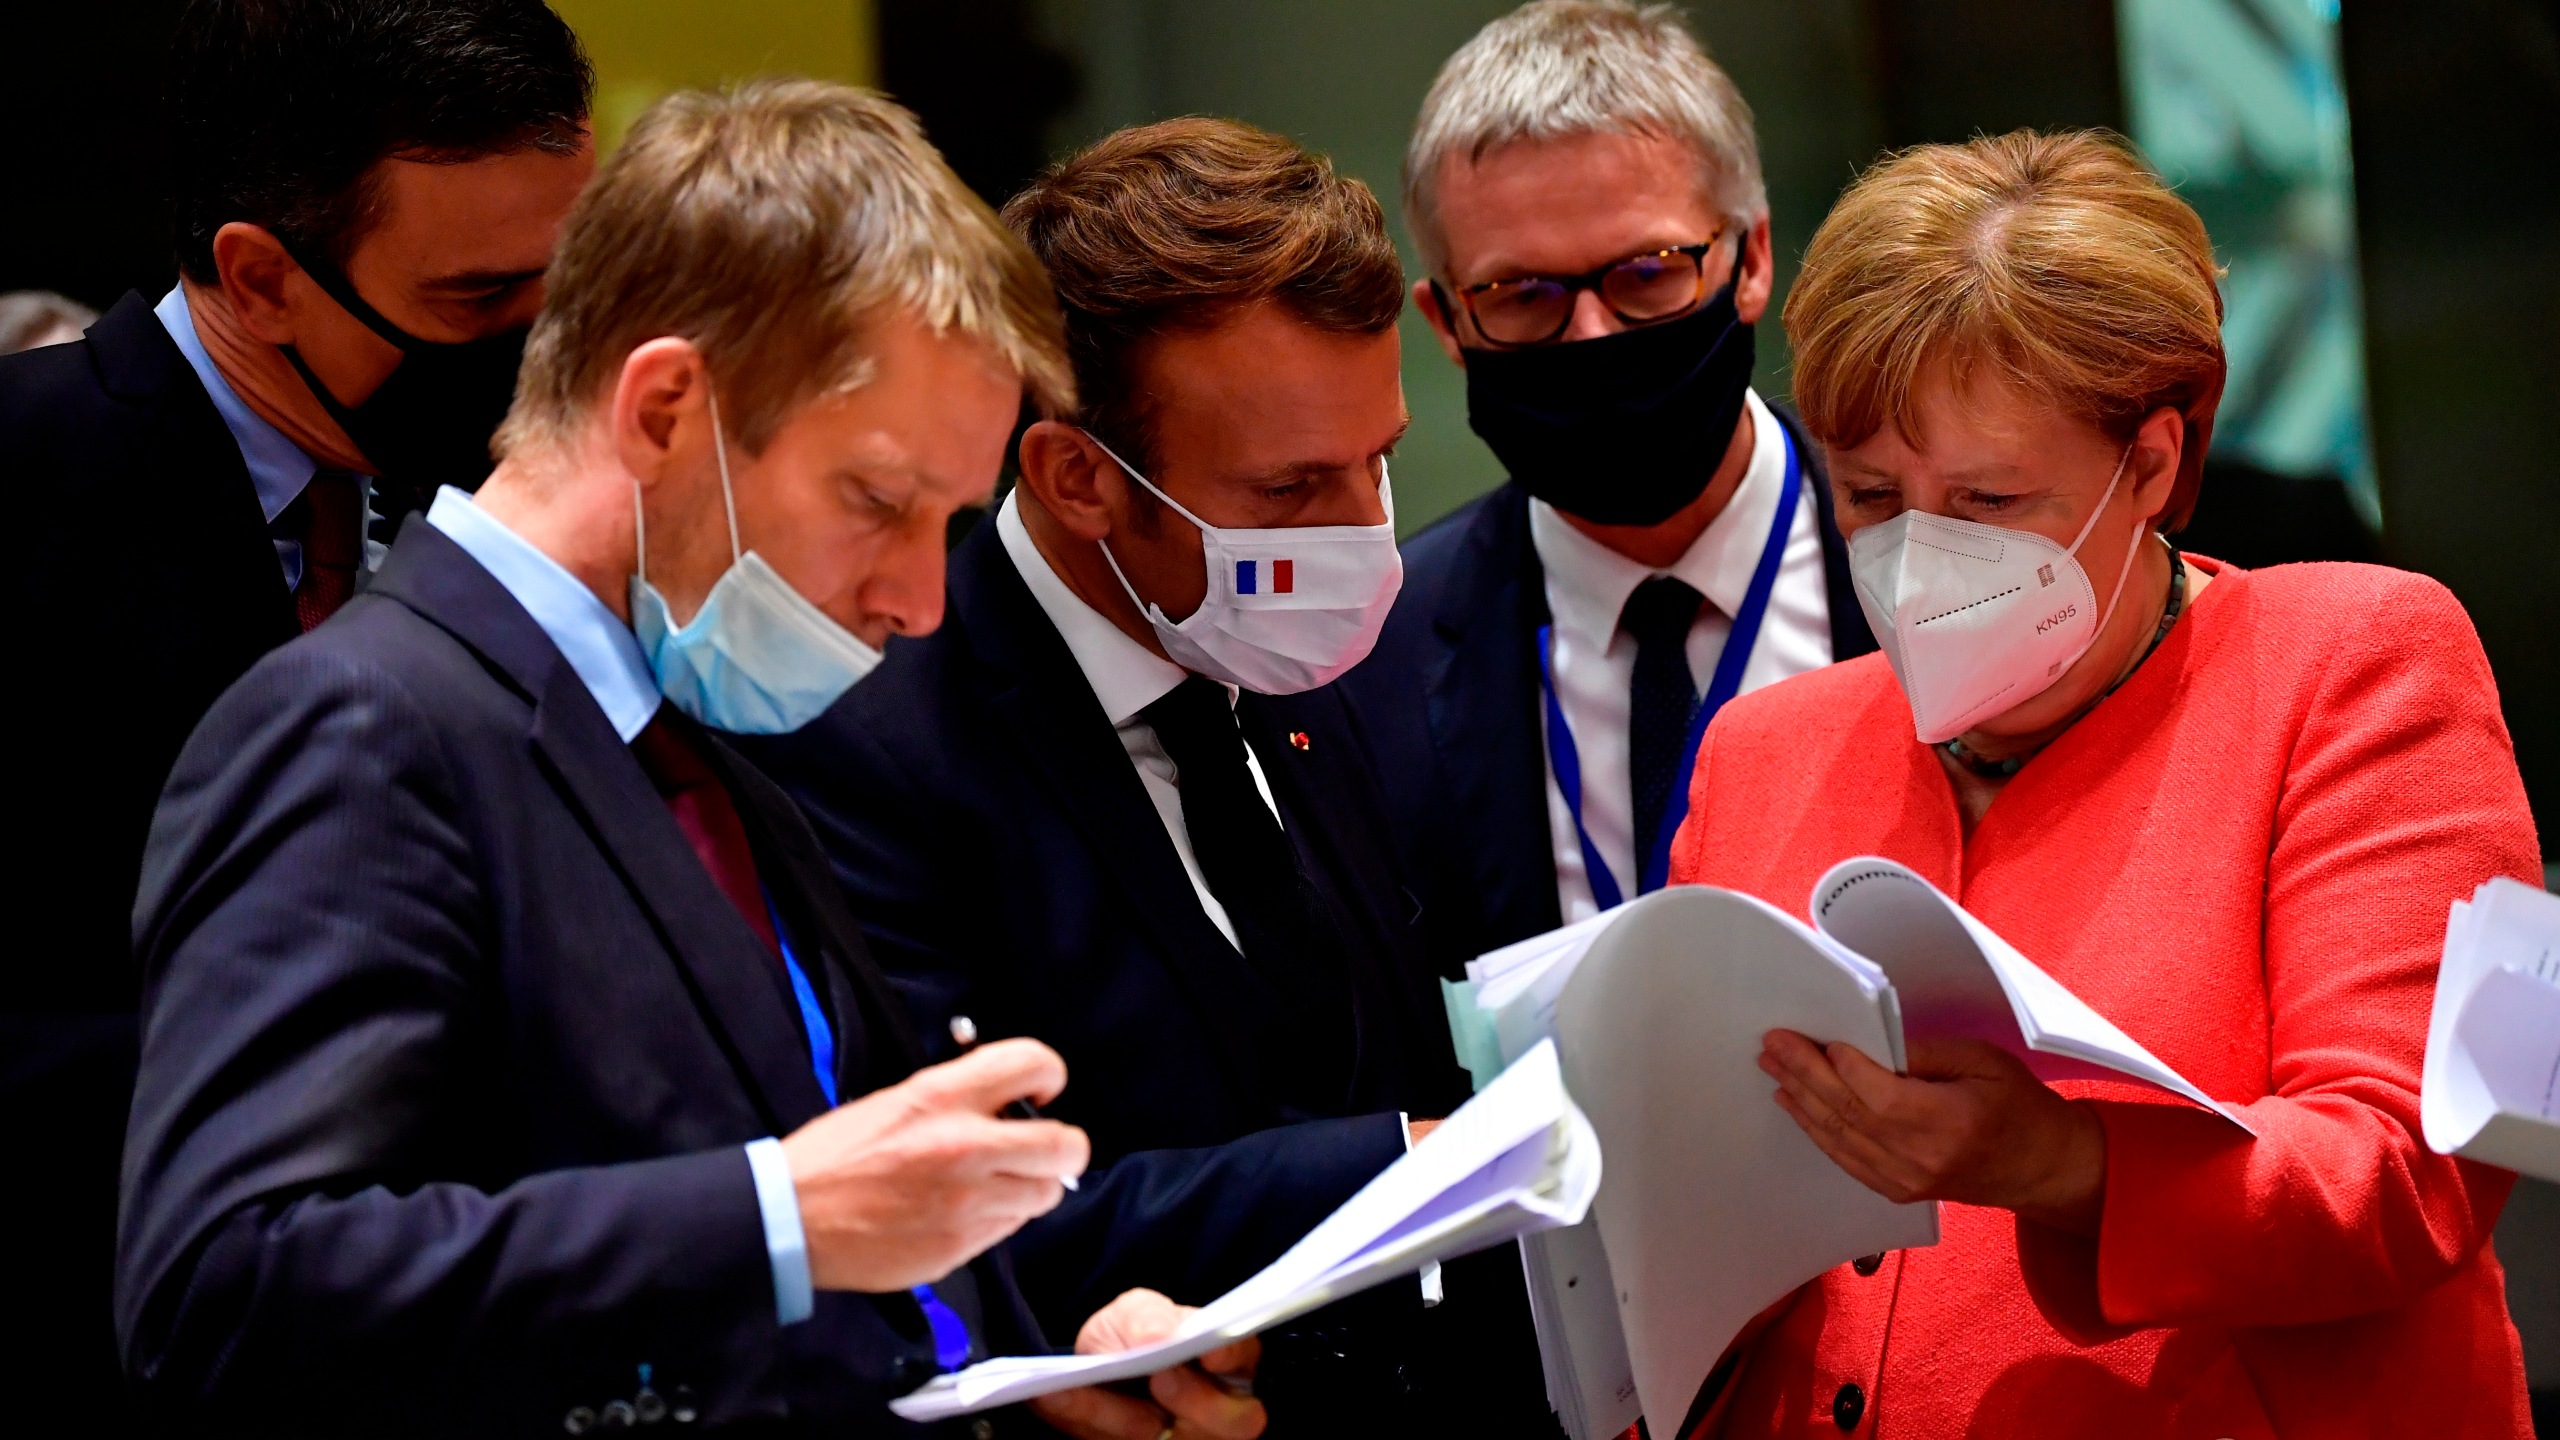 German Chancellor Angela Merkel, right, speaks with French President Emmanuel Macron, center, during a round table meeting at an EU summit in Brussels, Monday, July 20, 2020. (John Thys, Pool Photo via AP)